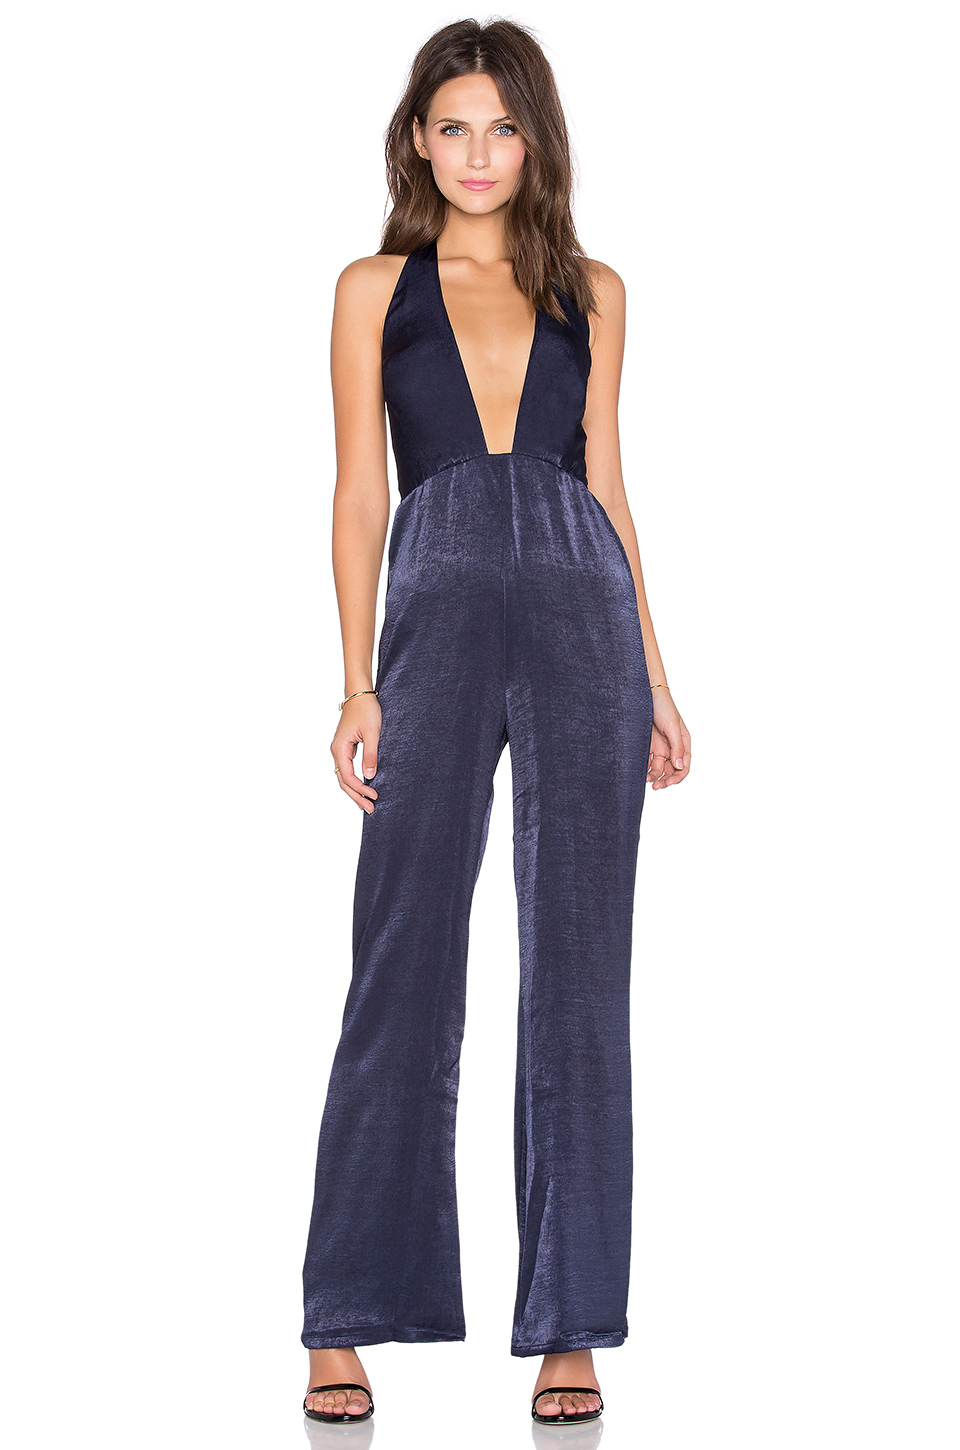 Halter Neck Culotte Jumpsuit - Free UK Delivery - 10 12 14 16 18 20 - Get a simple and effective style fix with this easy to wear culotte jumpsuit. Made in a hue bright enough to make anyone smile, this jumpsuit is finished with a feminine halter neck and tailored pleat wide leg. - taradsod.tk